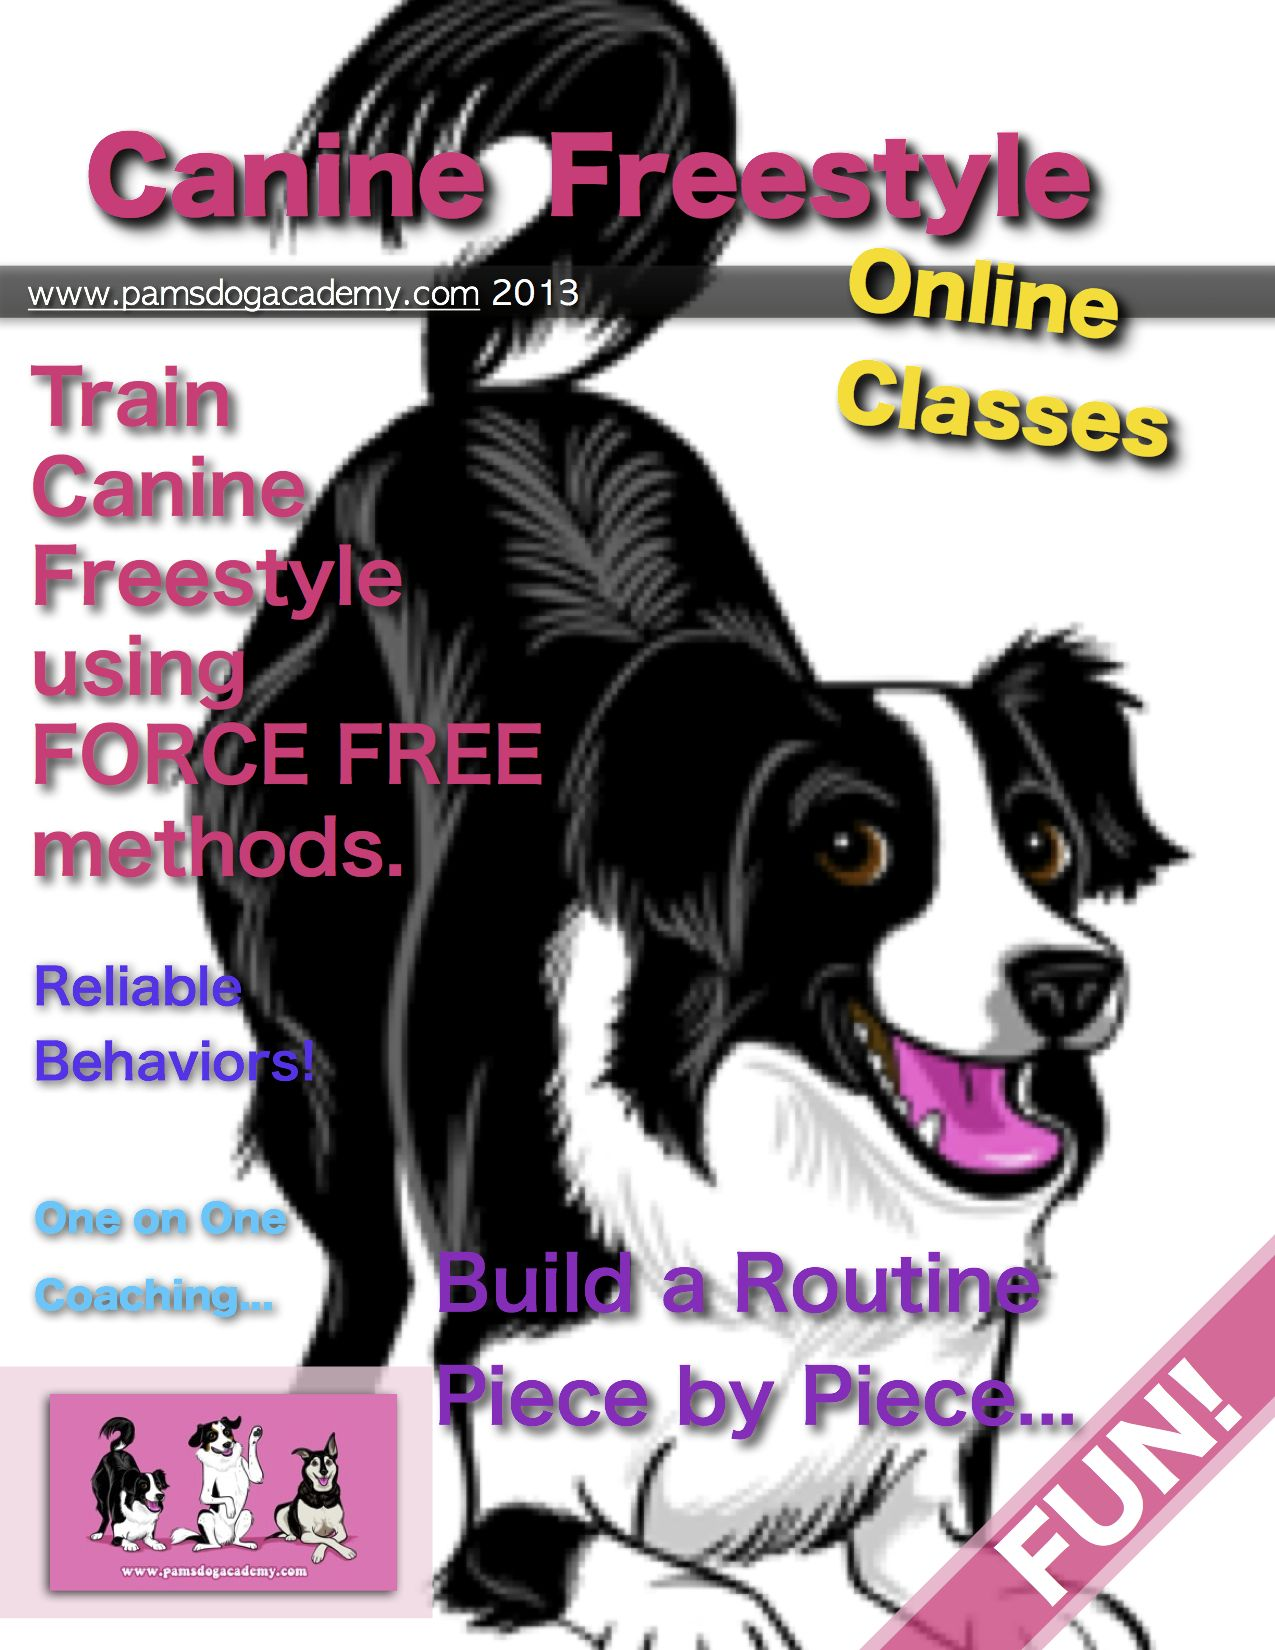 Online Canine Freestyle Clicker Basics Classes Through Pam S Dog